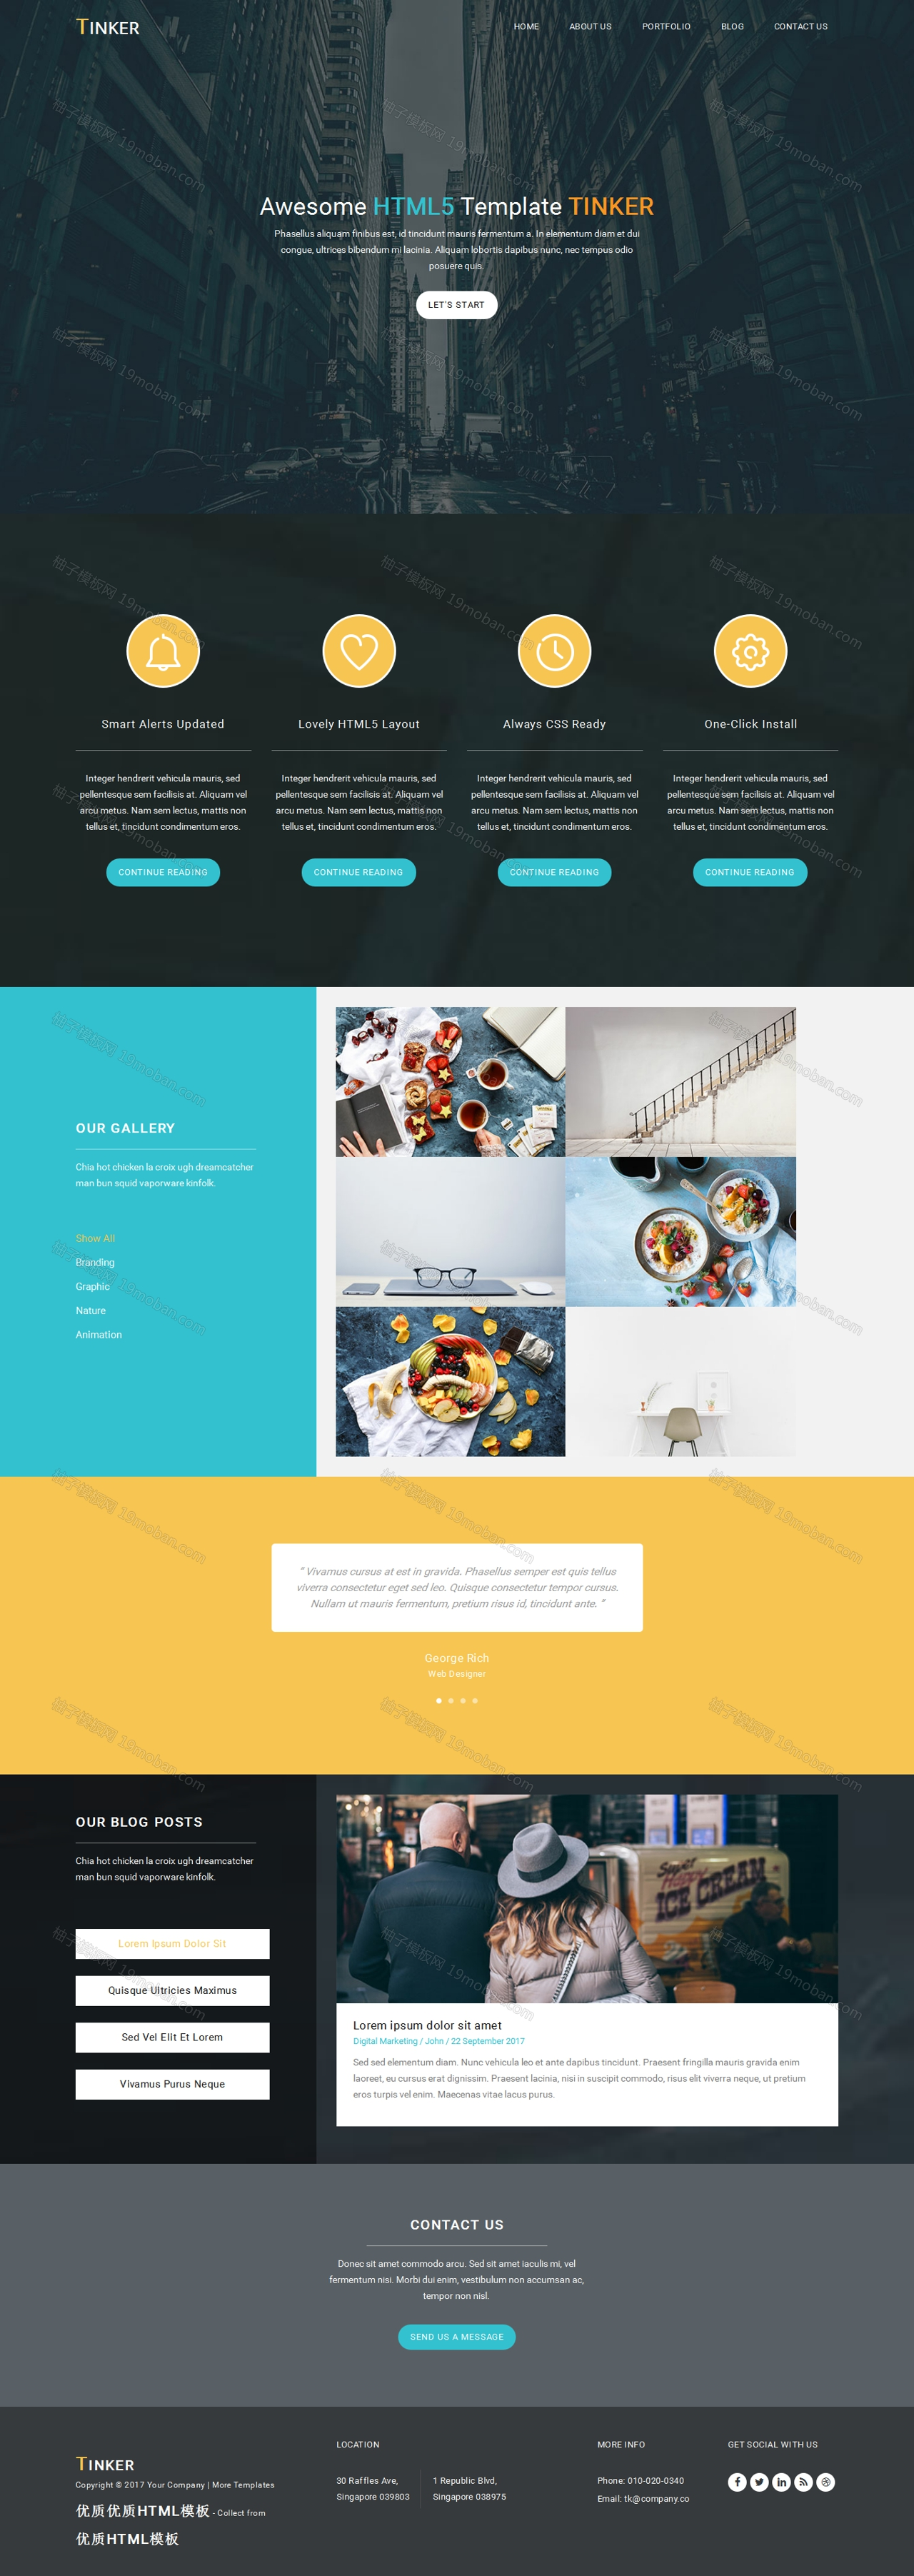 Bootstrap Responsive Background Image Posted By Christopher Simpson